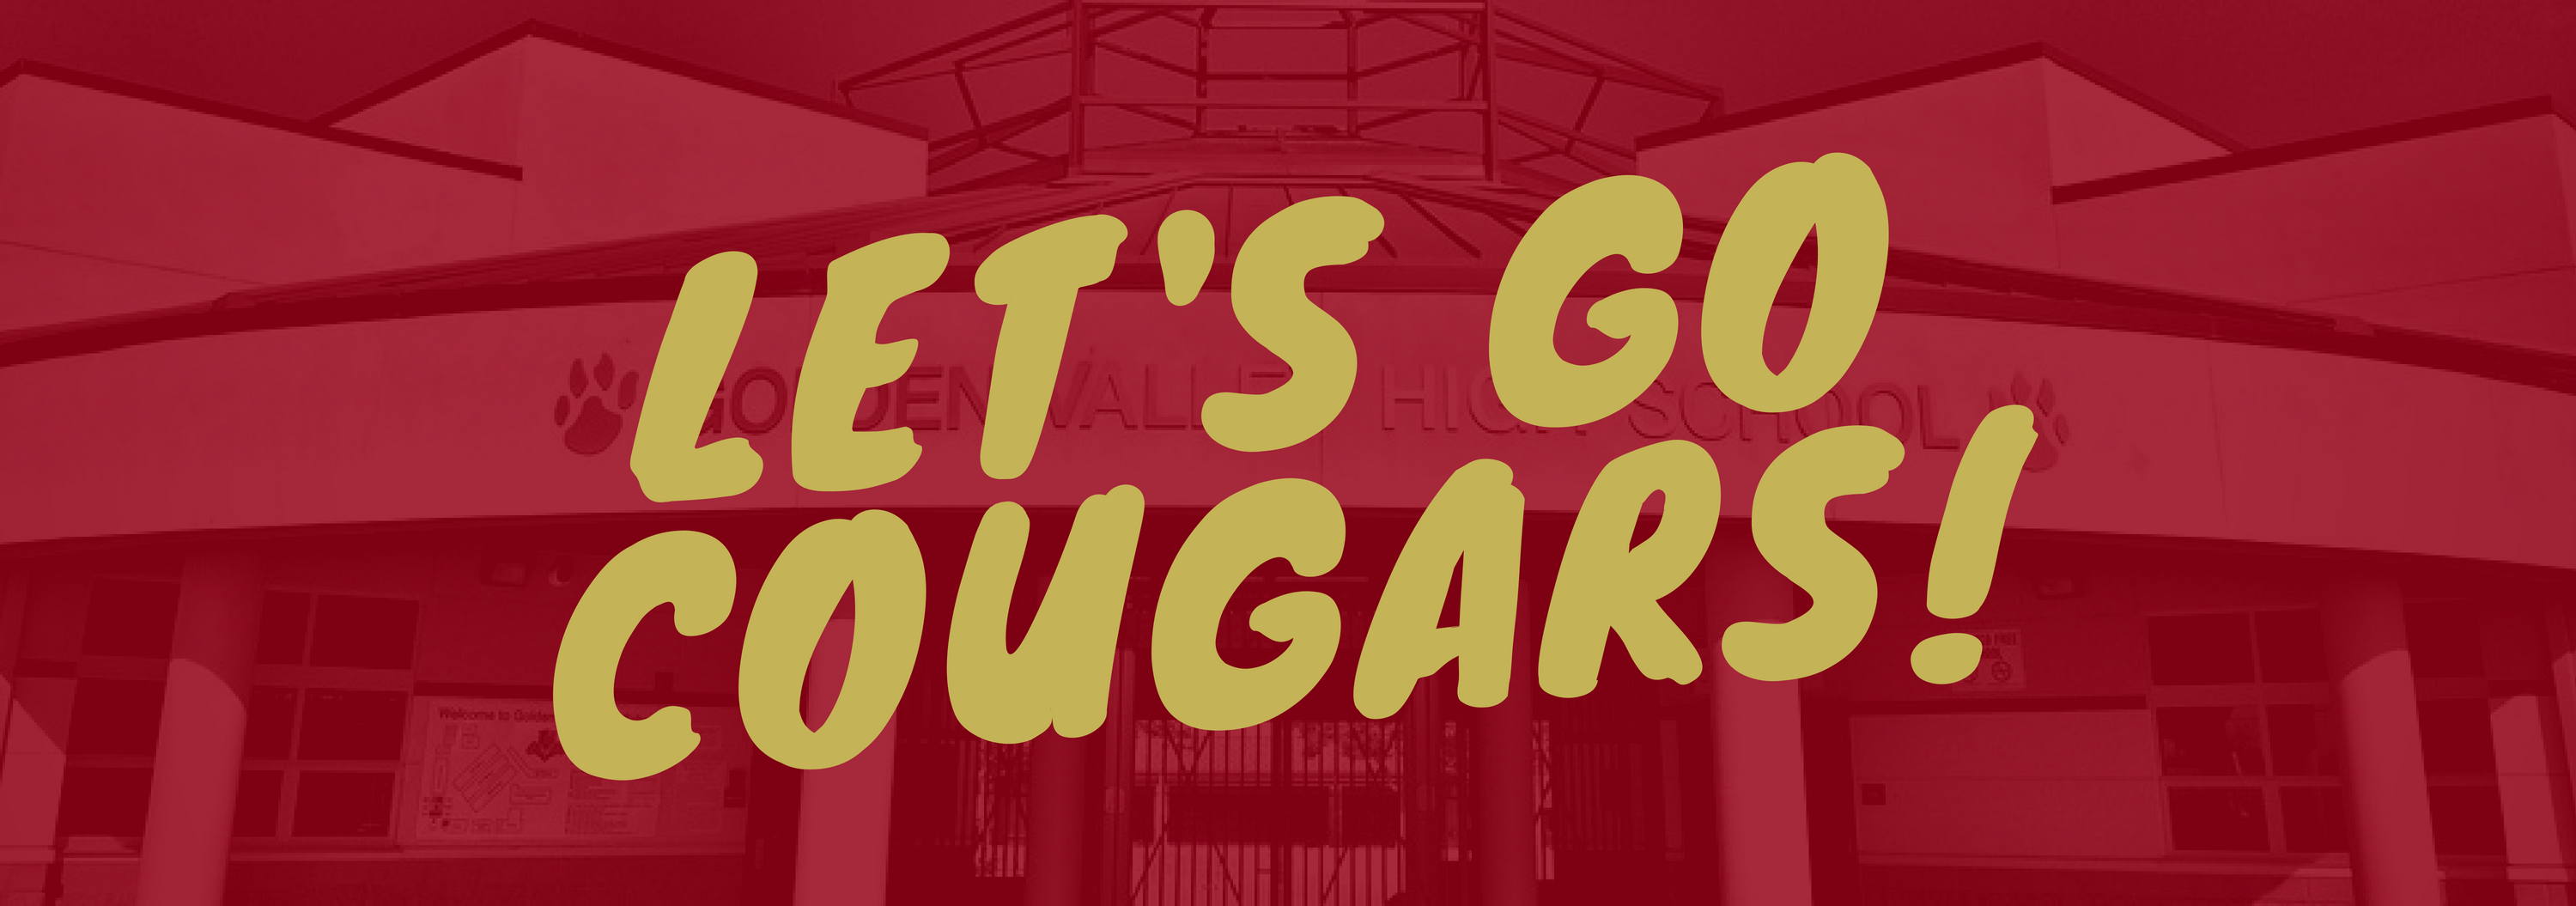 Golden Valley School Image with Transparent Red Background that Says Let's Go Cougars